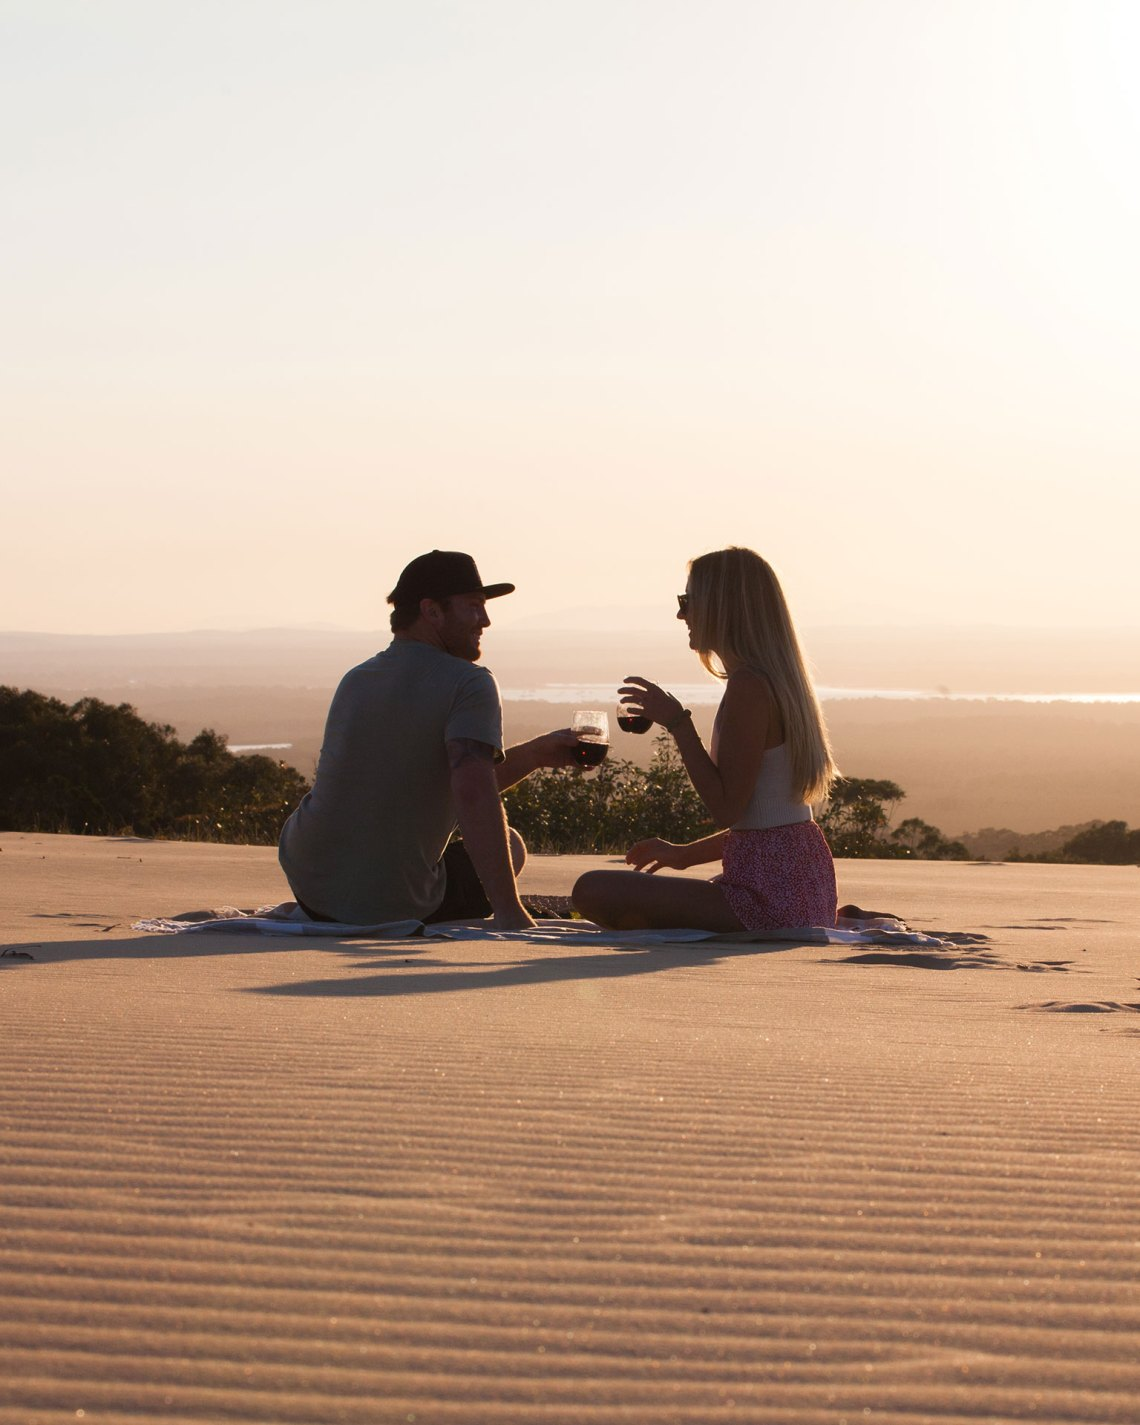 Kaede and James Sitting on Sand Dune